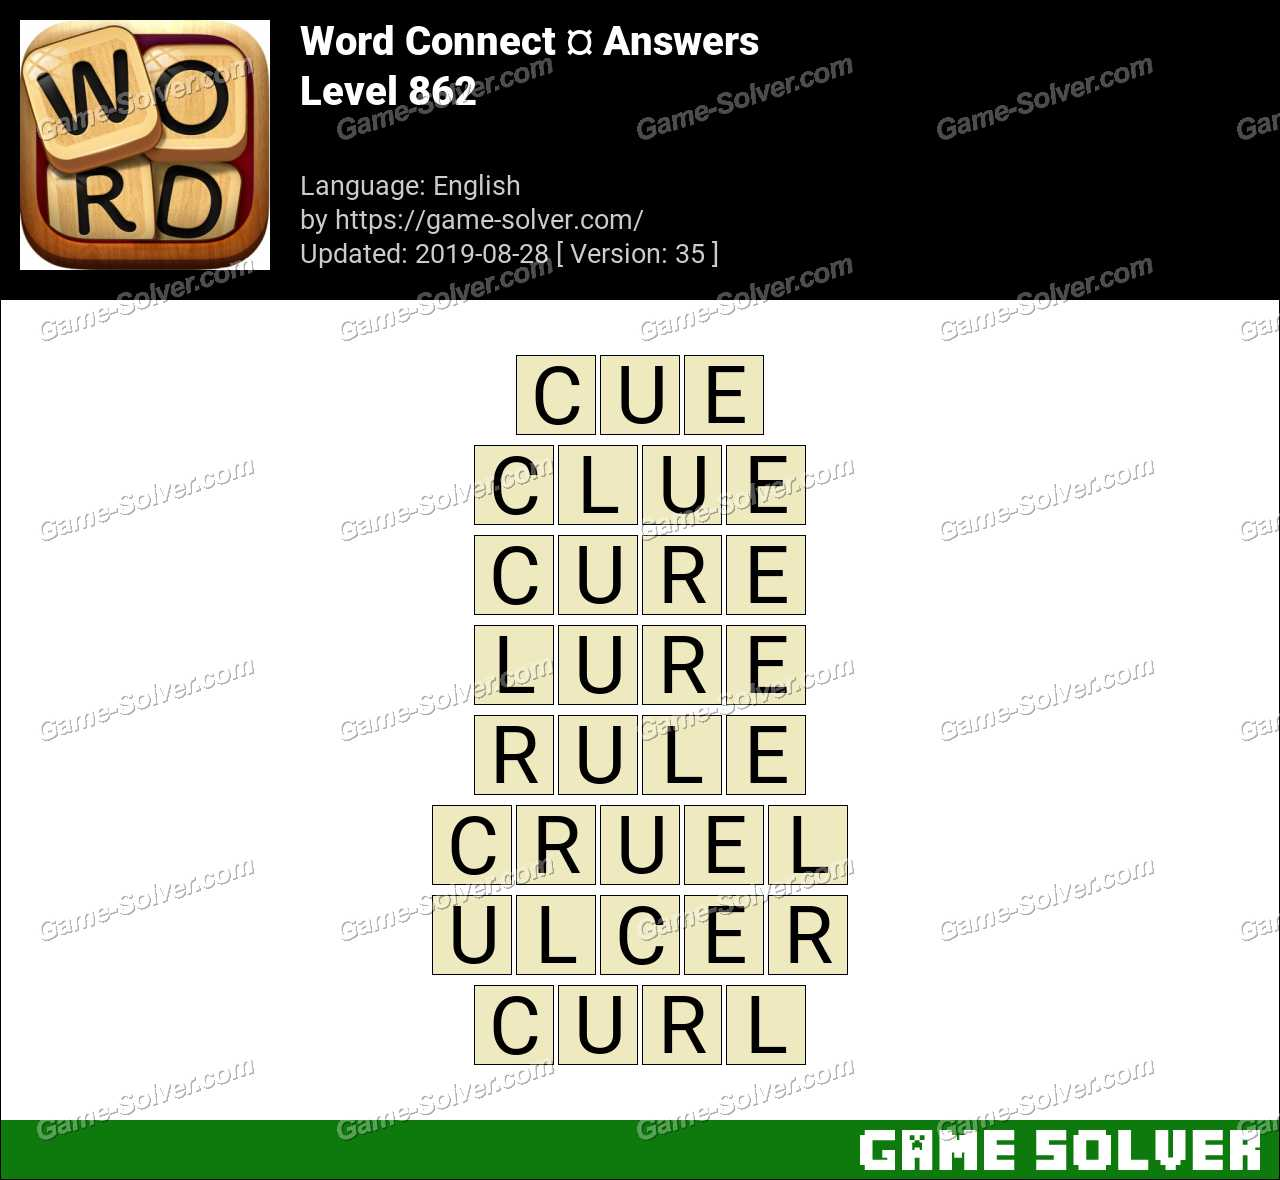 Word Connect Level 862 Answers